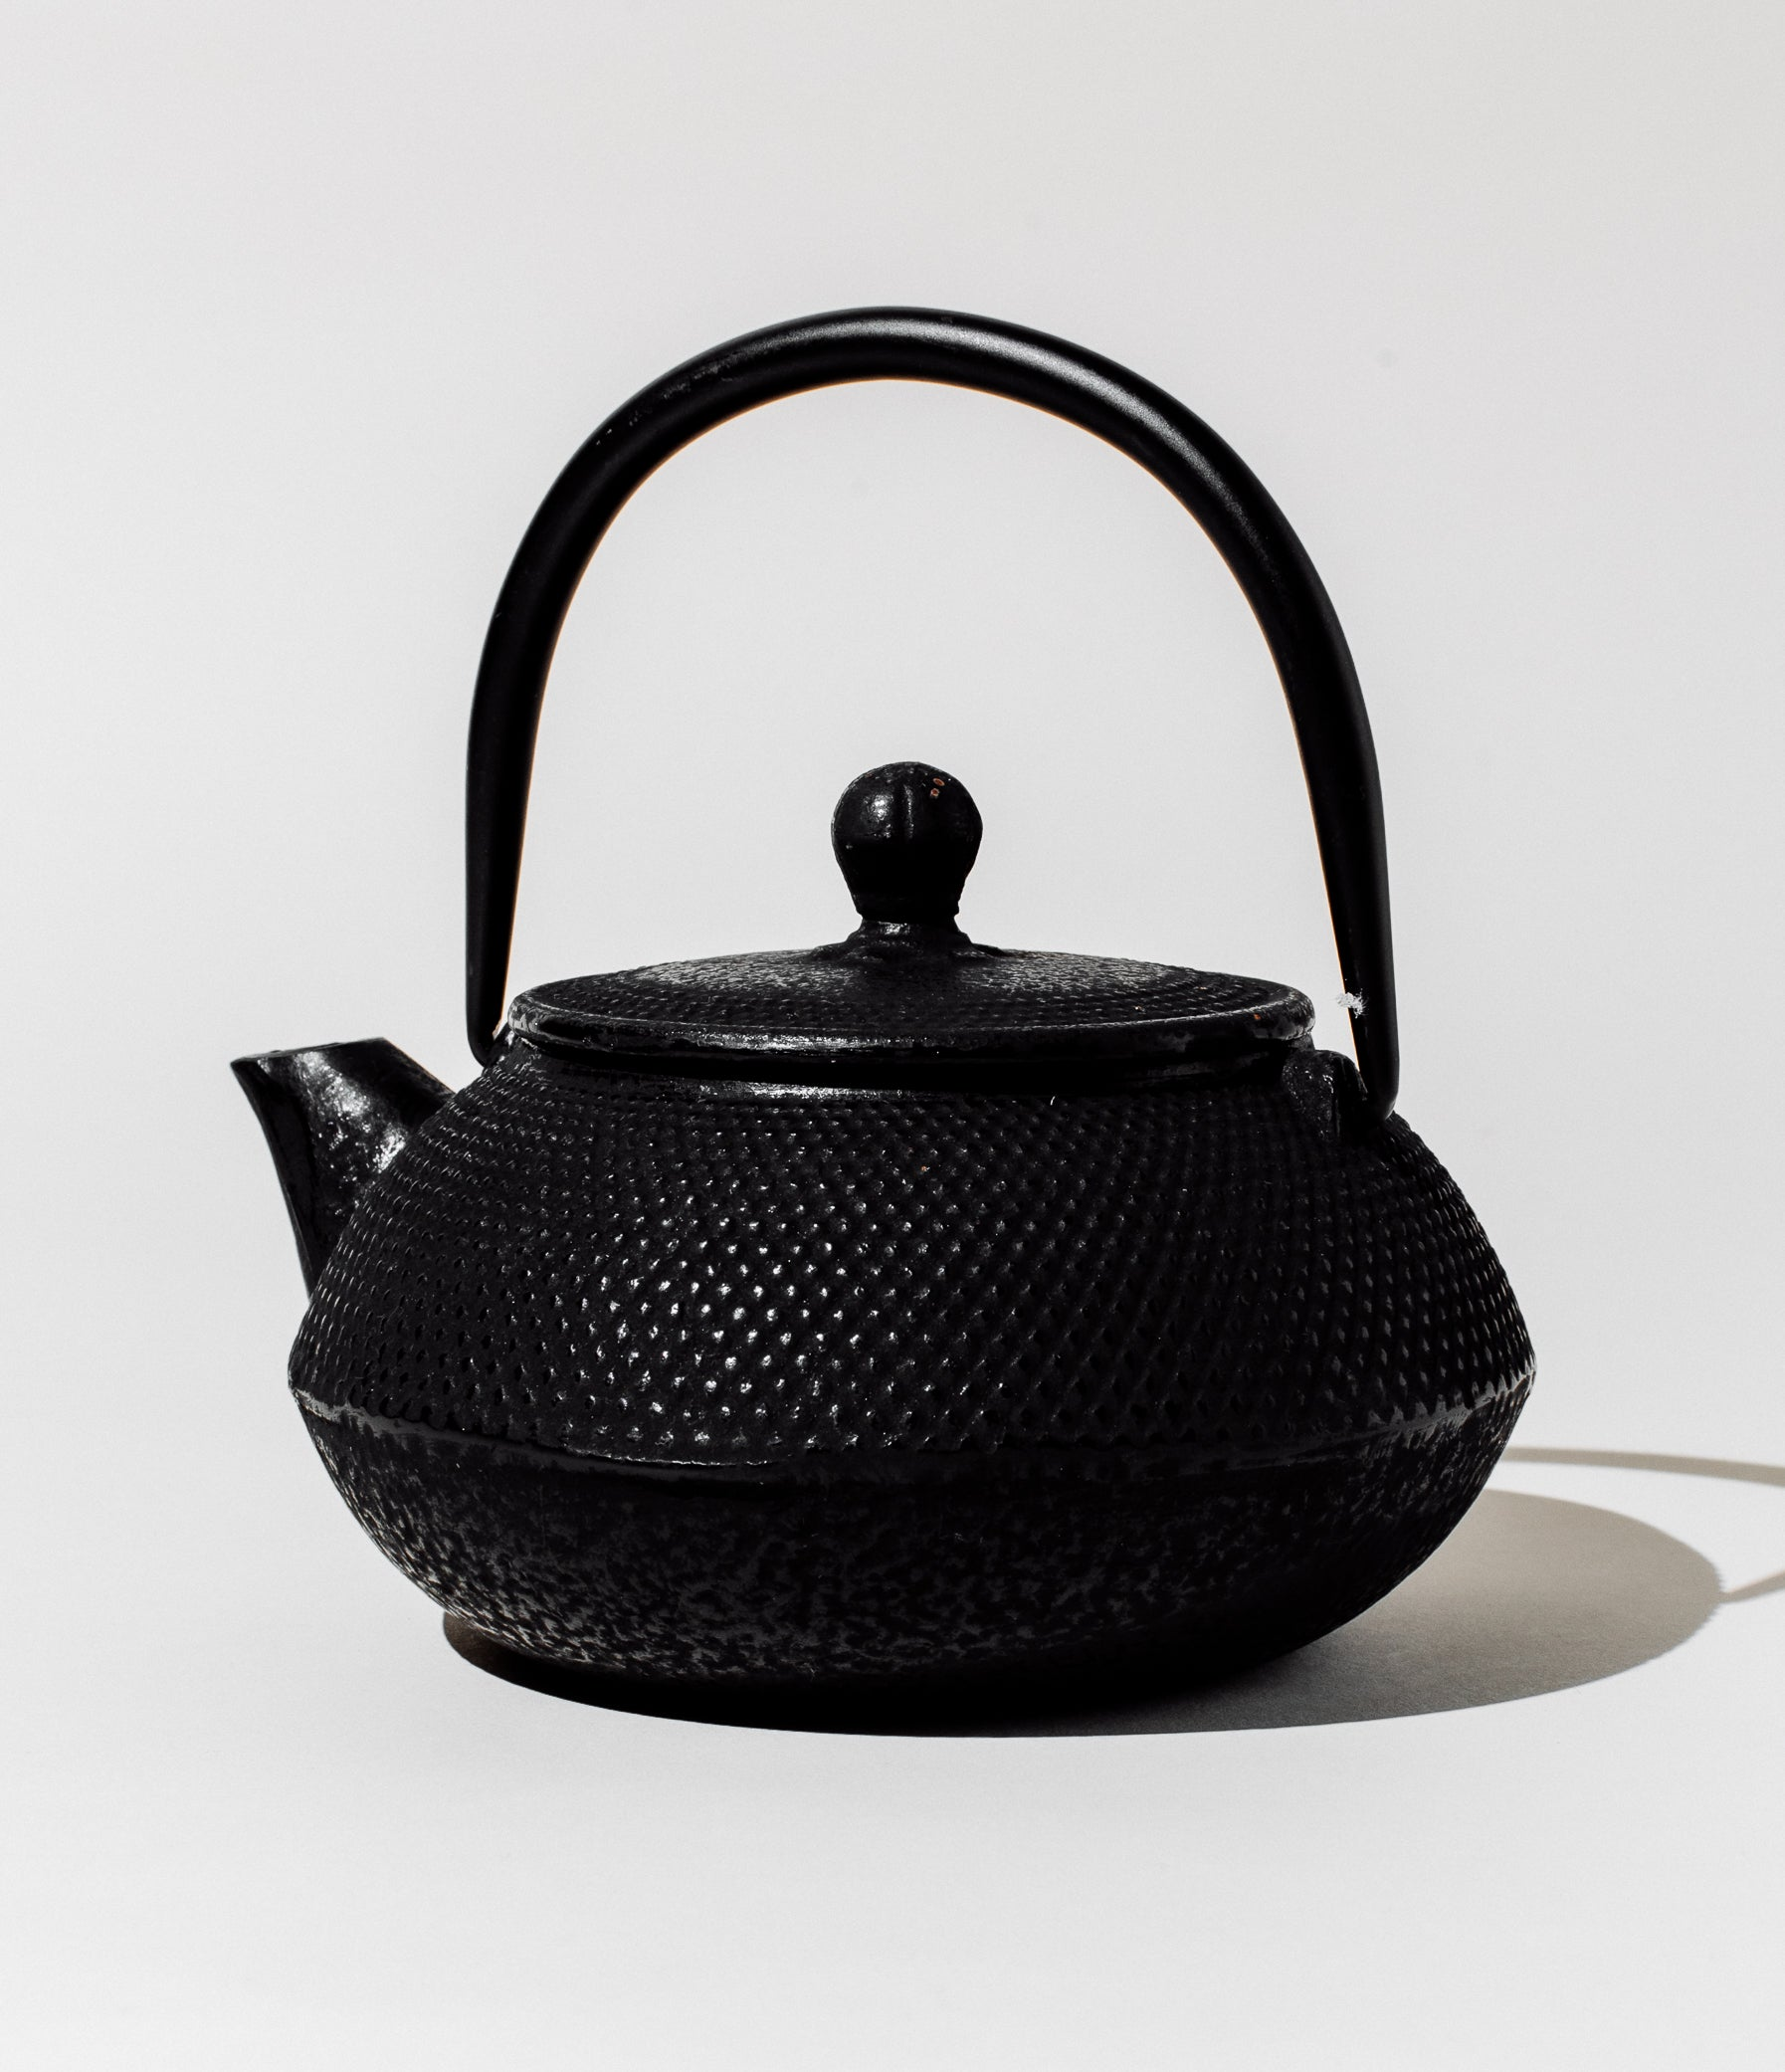 Tetsubin Cast Iron Tea Pot Teaware by Art of Tea